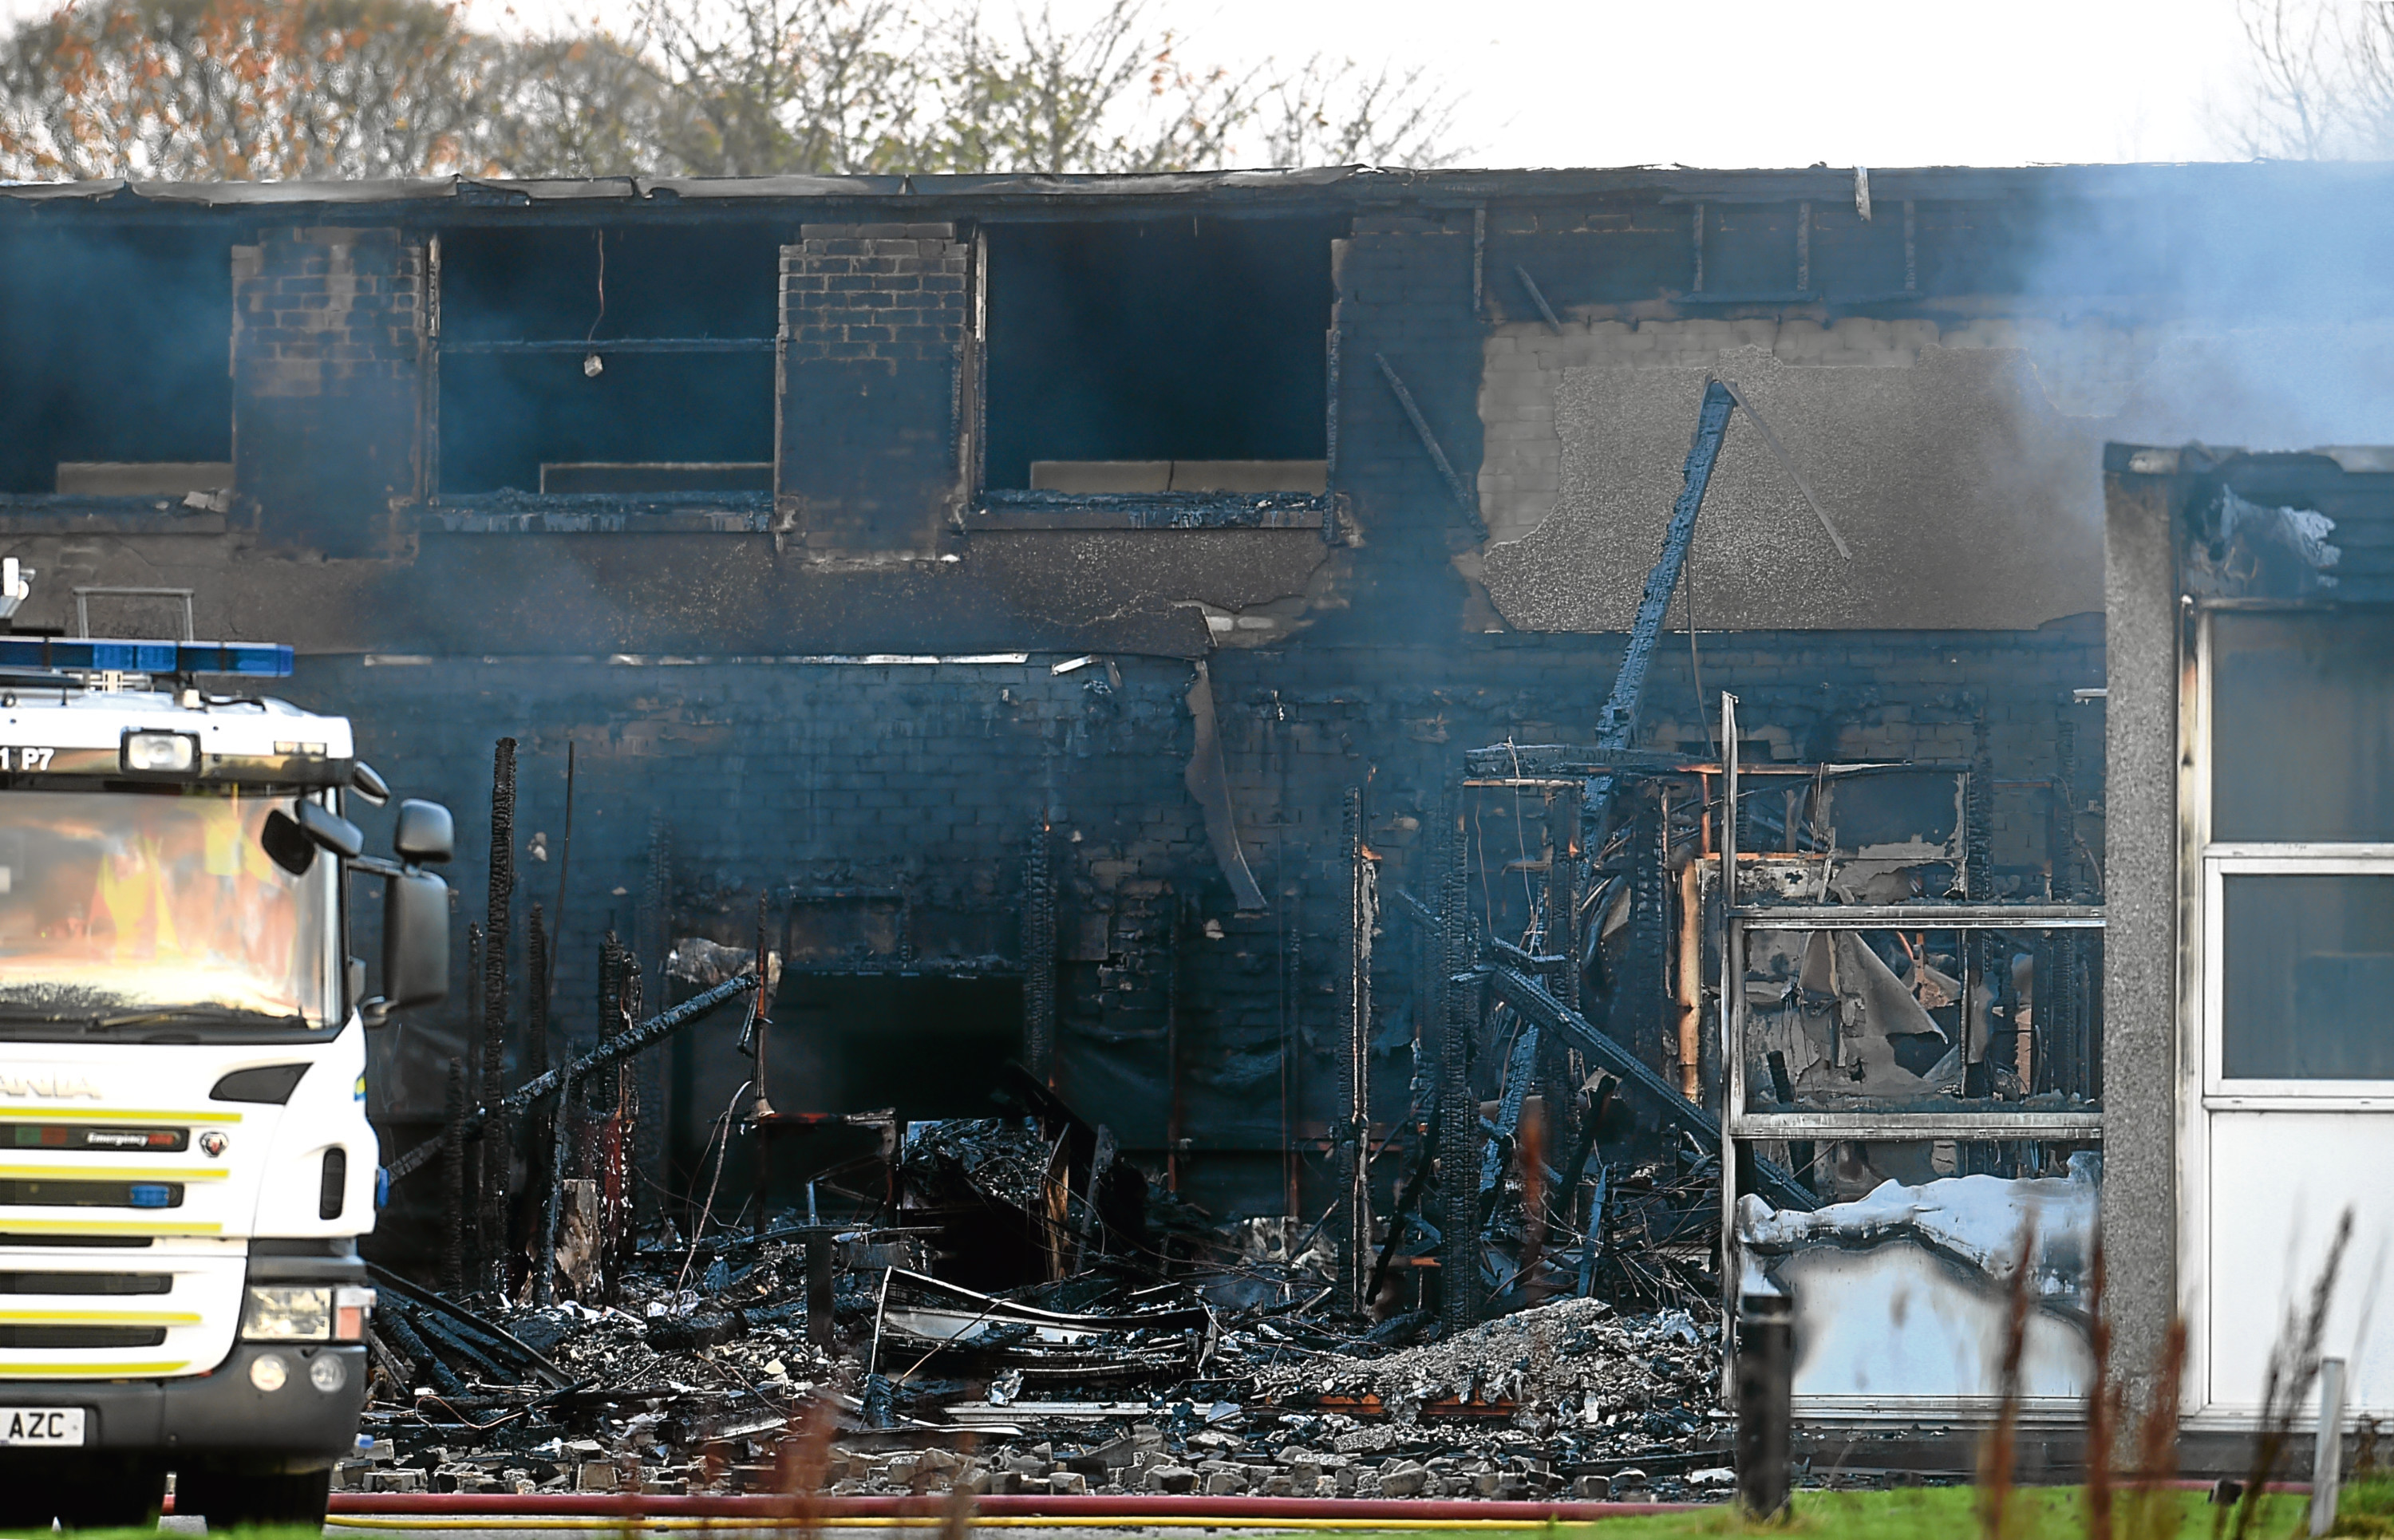 Firefighters at the scene of the fire at Cordyce School